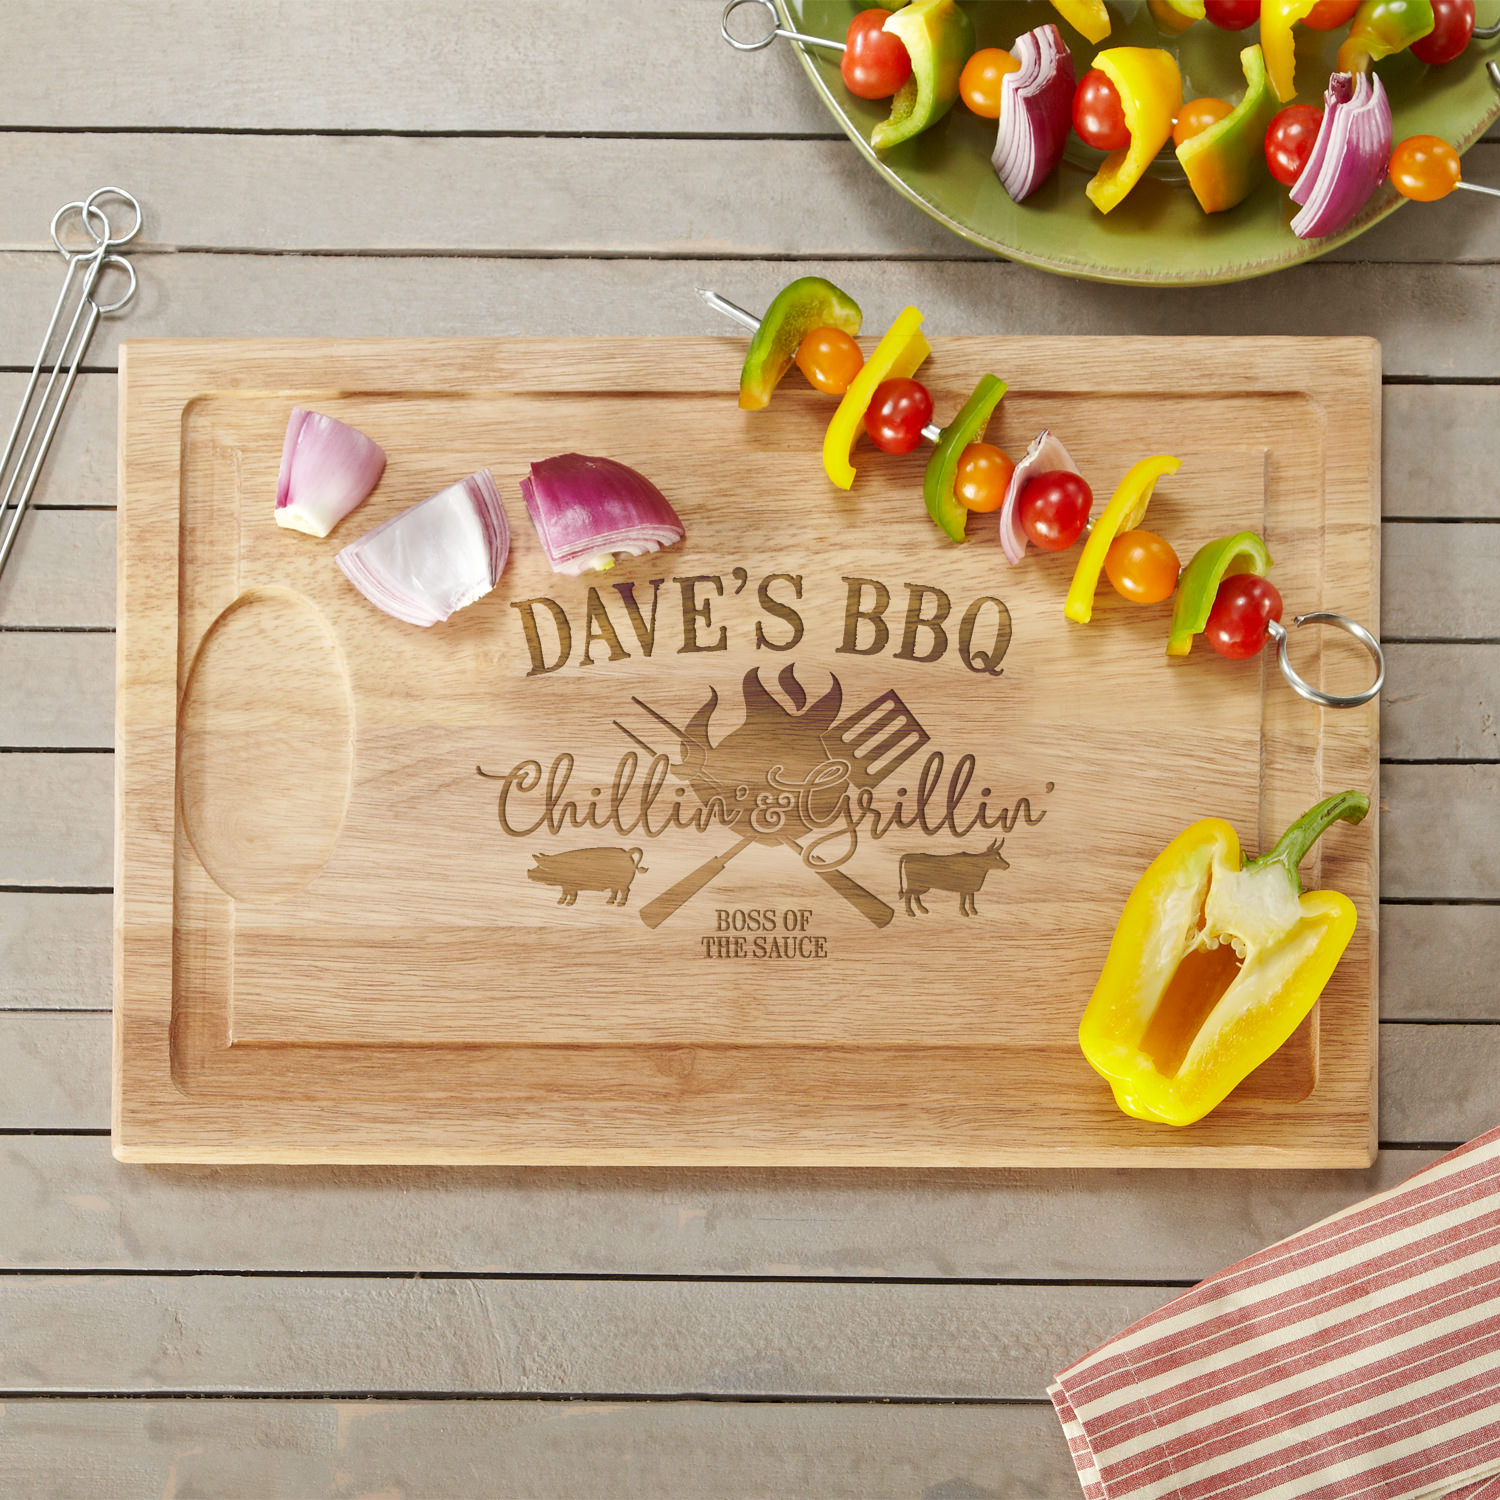 Personalized Chillin' & Grillin' Wood Cutting Board-Available in 2 Sizes